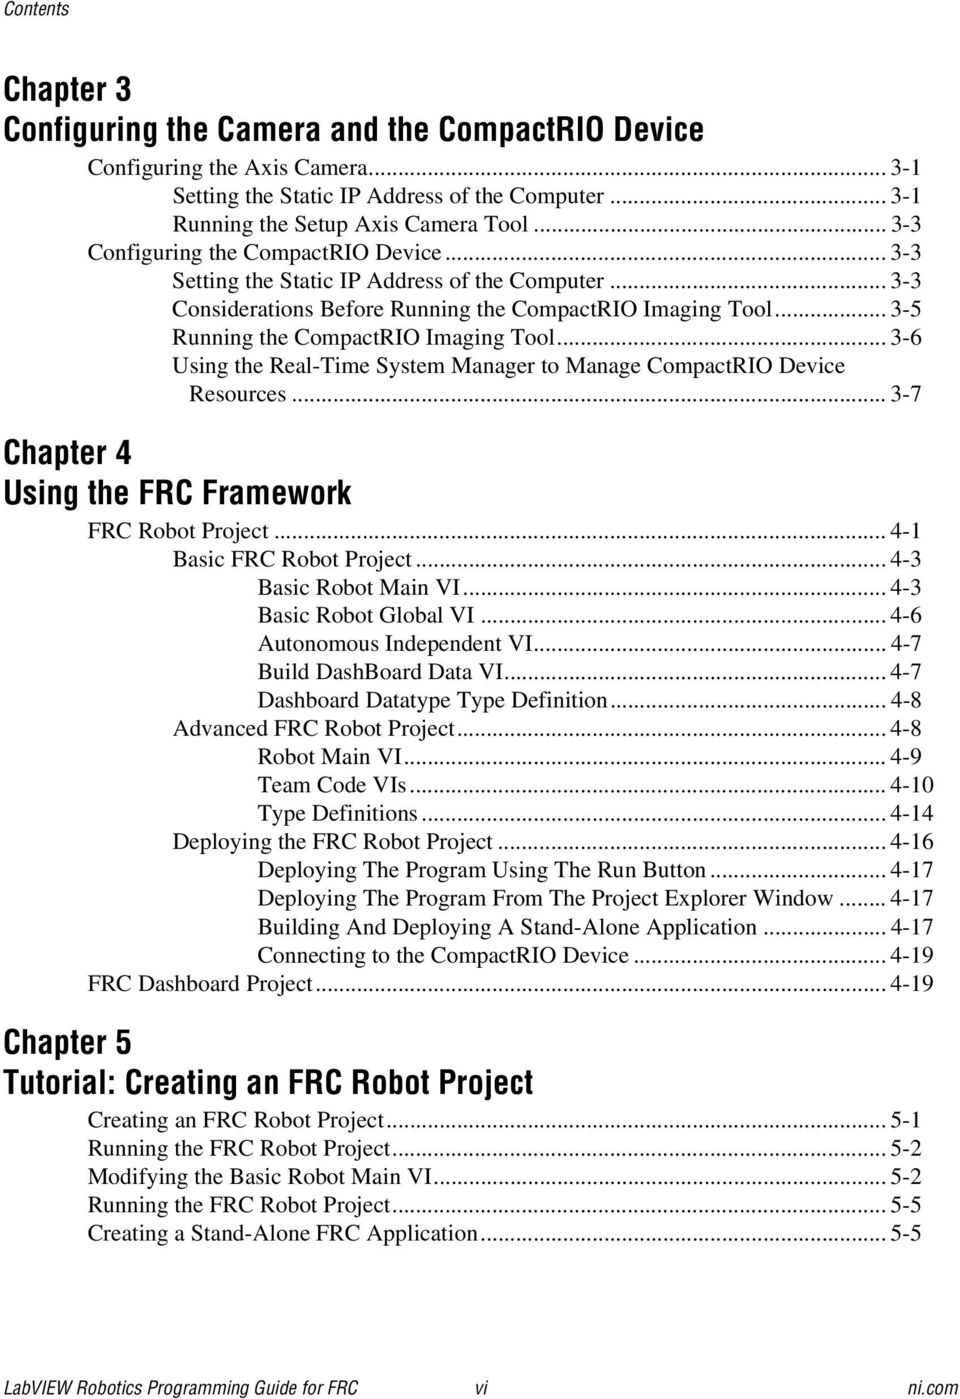 Labviewtm Robotics Programming Guide For The First Ti Jaguar Frc Wiring Diagram 3 6 Using Real Time System Manager To Manage Compactrio Device